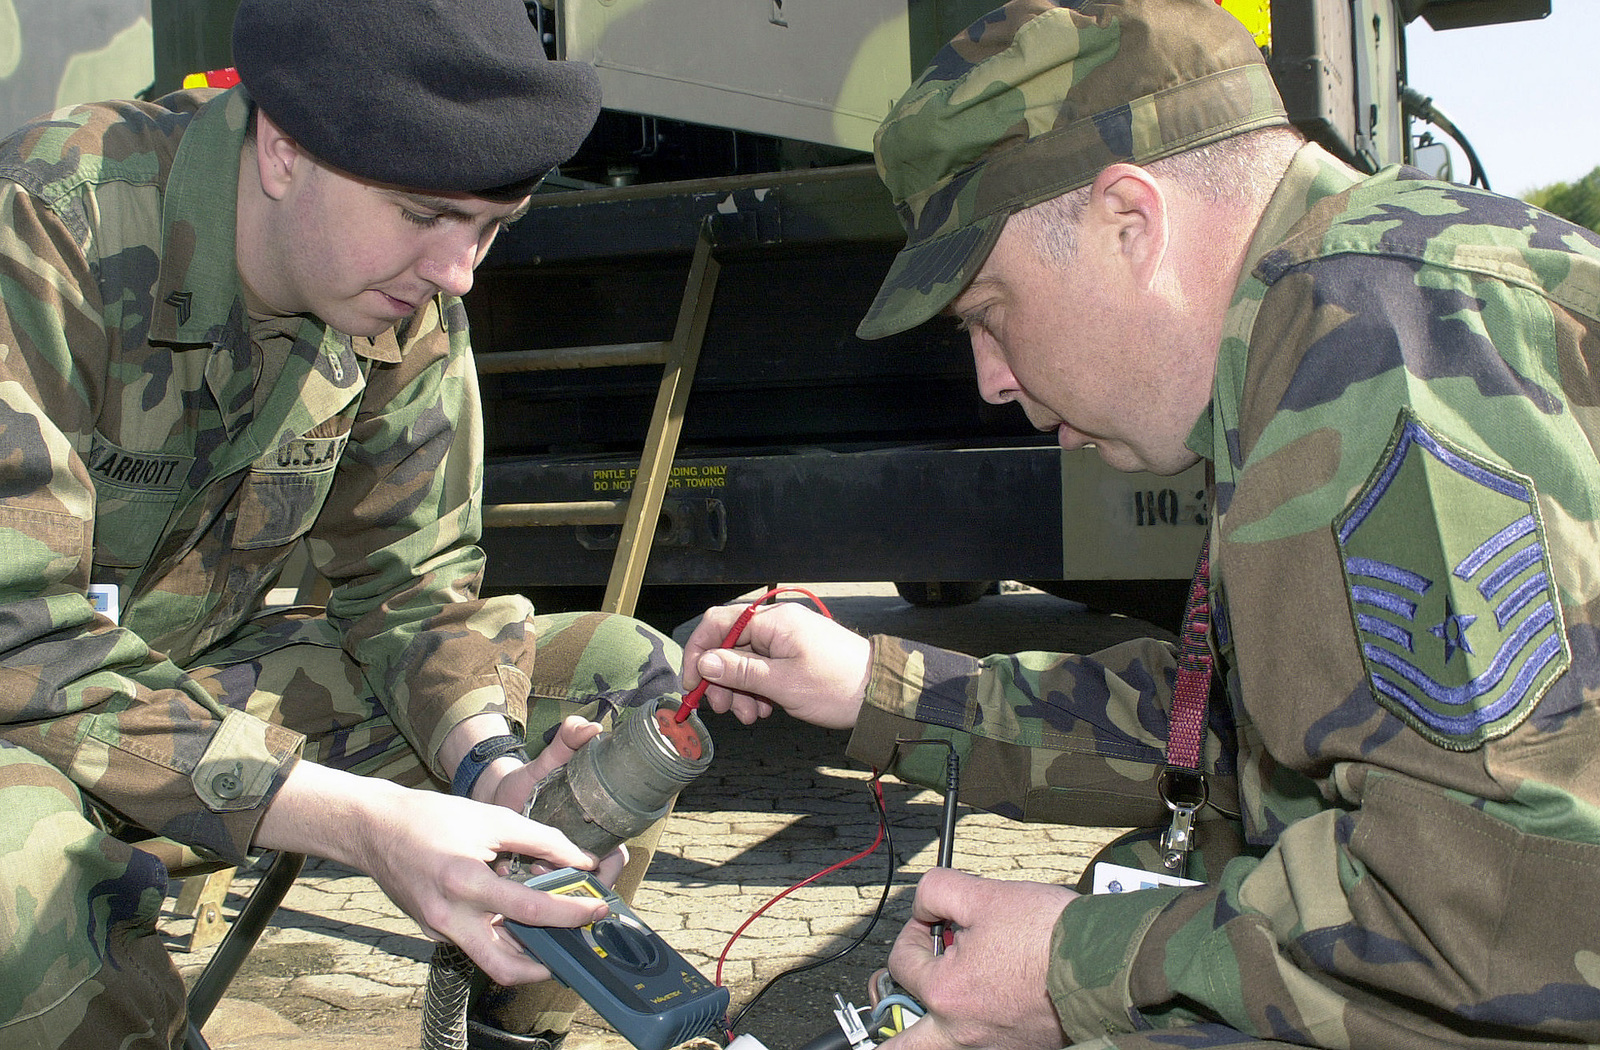 US Army (USA) Sergeant (SGT) Nick Marriott (left), Information Analyst, 7th Signal Brigade, and US Air Force (USAF) MASTER Sergeant (MSGT) Billy Hackleman, 86th Communications Squadron (CS), set up a power supply during Exercise COMBINED ENDEAVOR 2002, at Lager Aulenbach, Germany